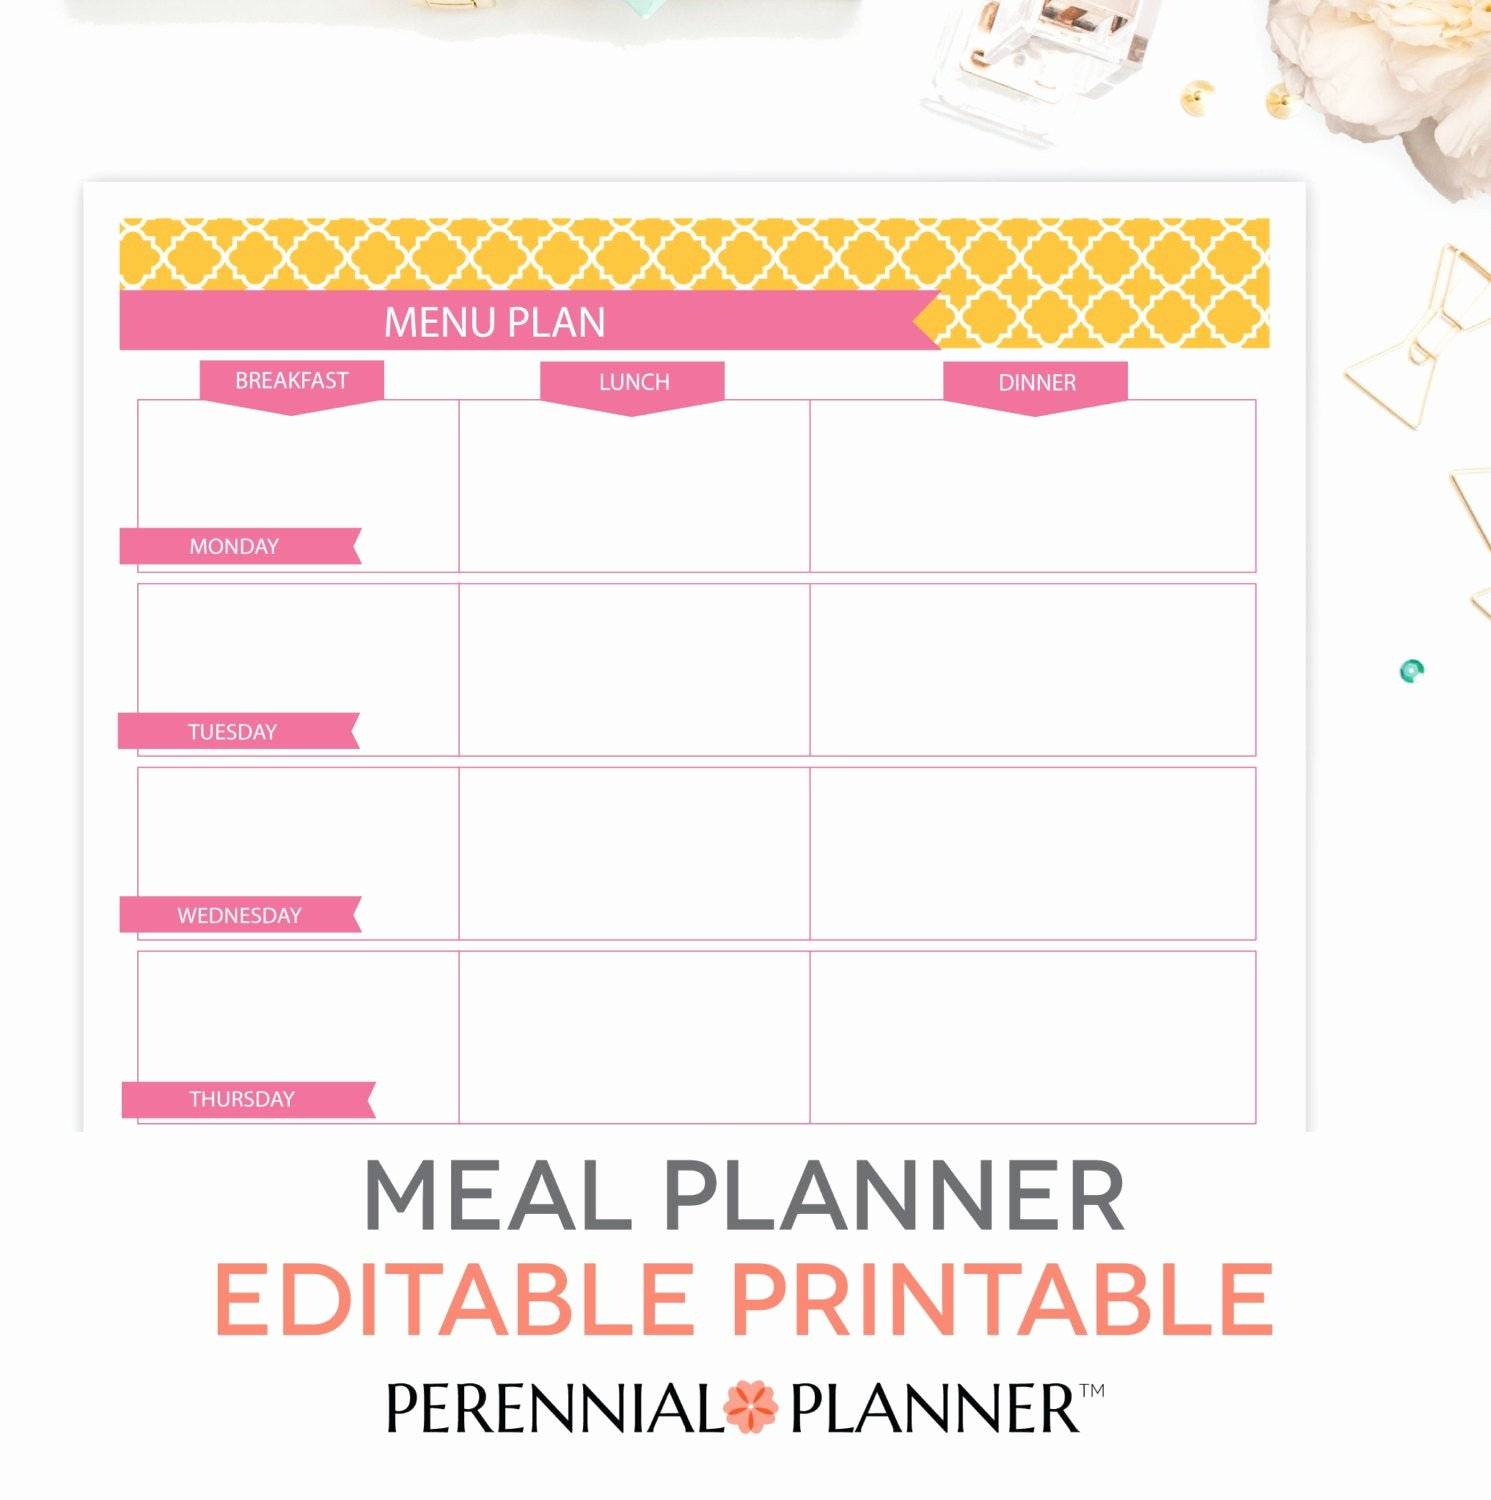 Weekly Meal Plan Template Awesome Menu Plan Weekly Meal Planning Template Printable Editable